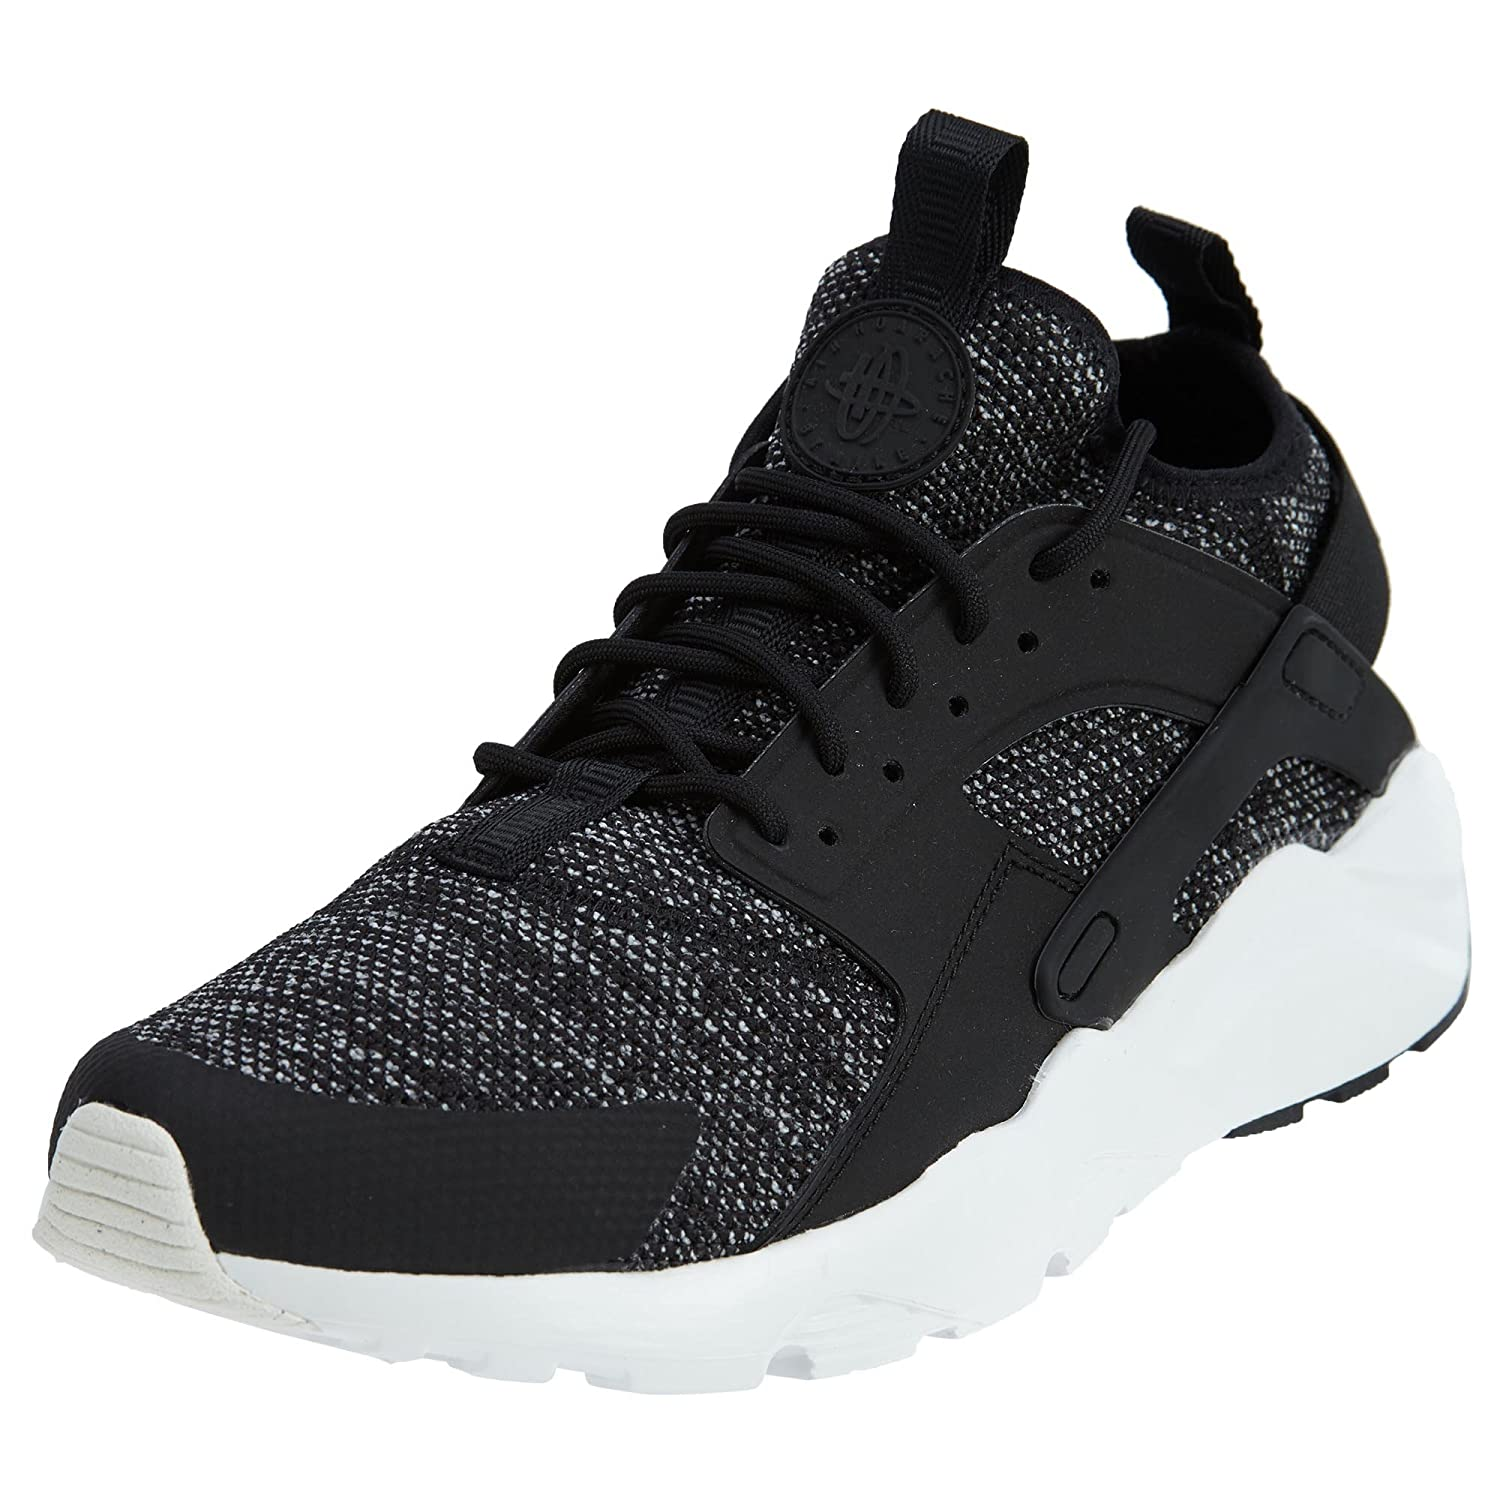 Nike Air Huarache Run Ultra Breathe Sneaker Herren 10.0 US